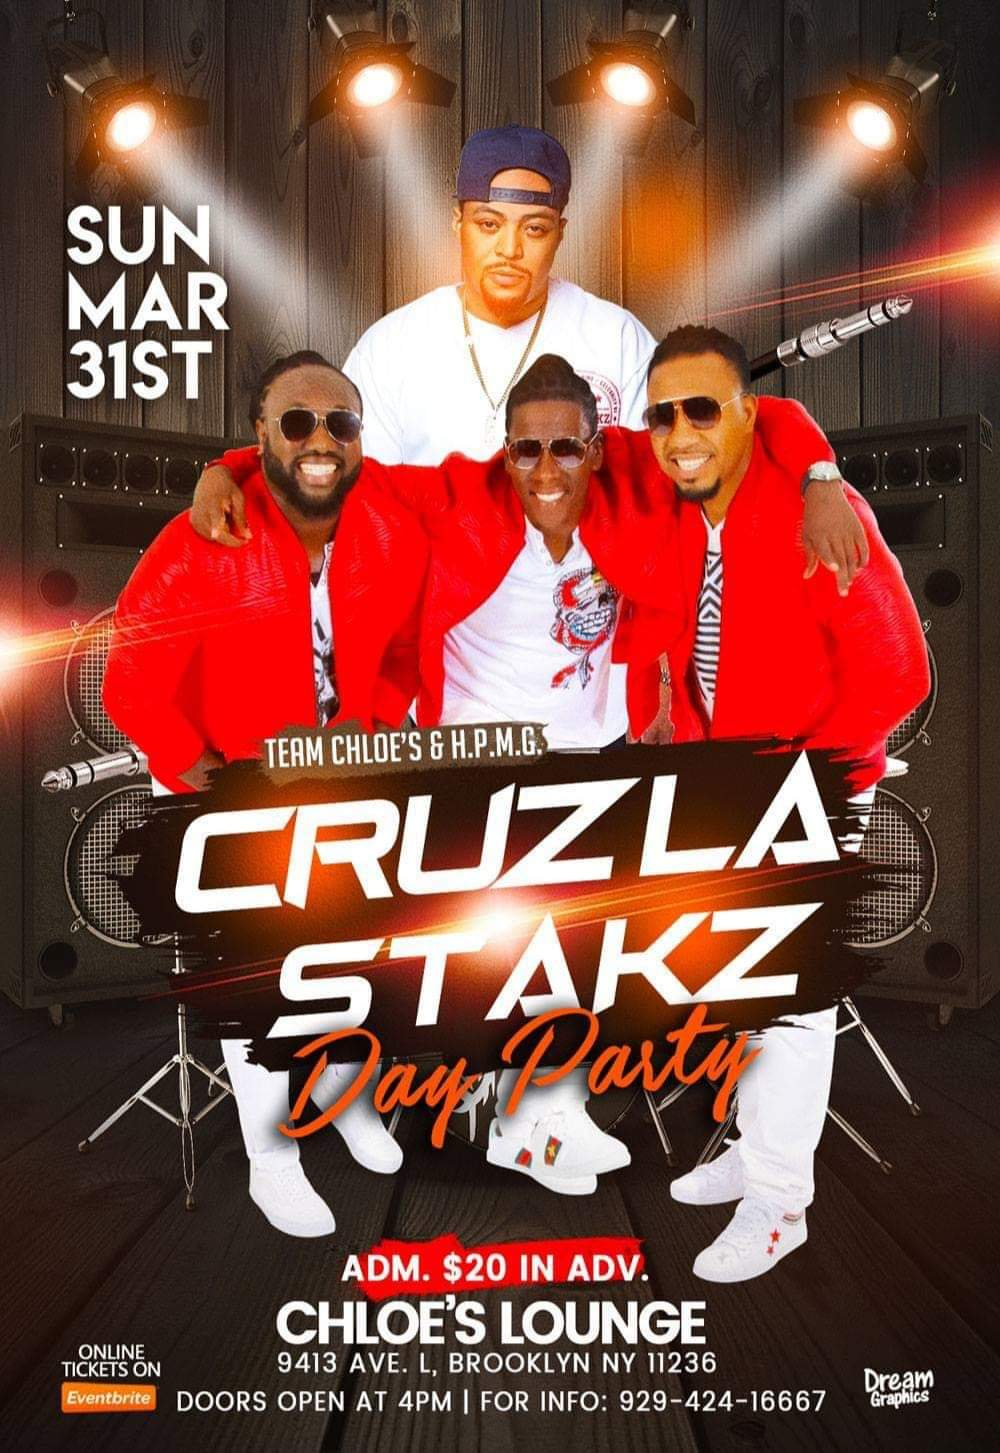 Cruz La Day Party - March 31.jpg